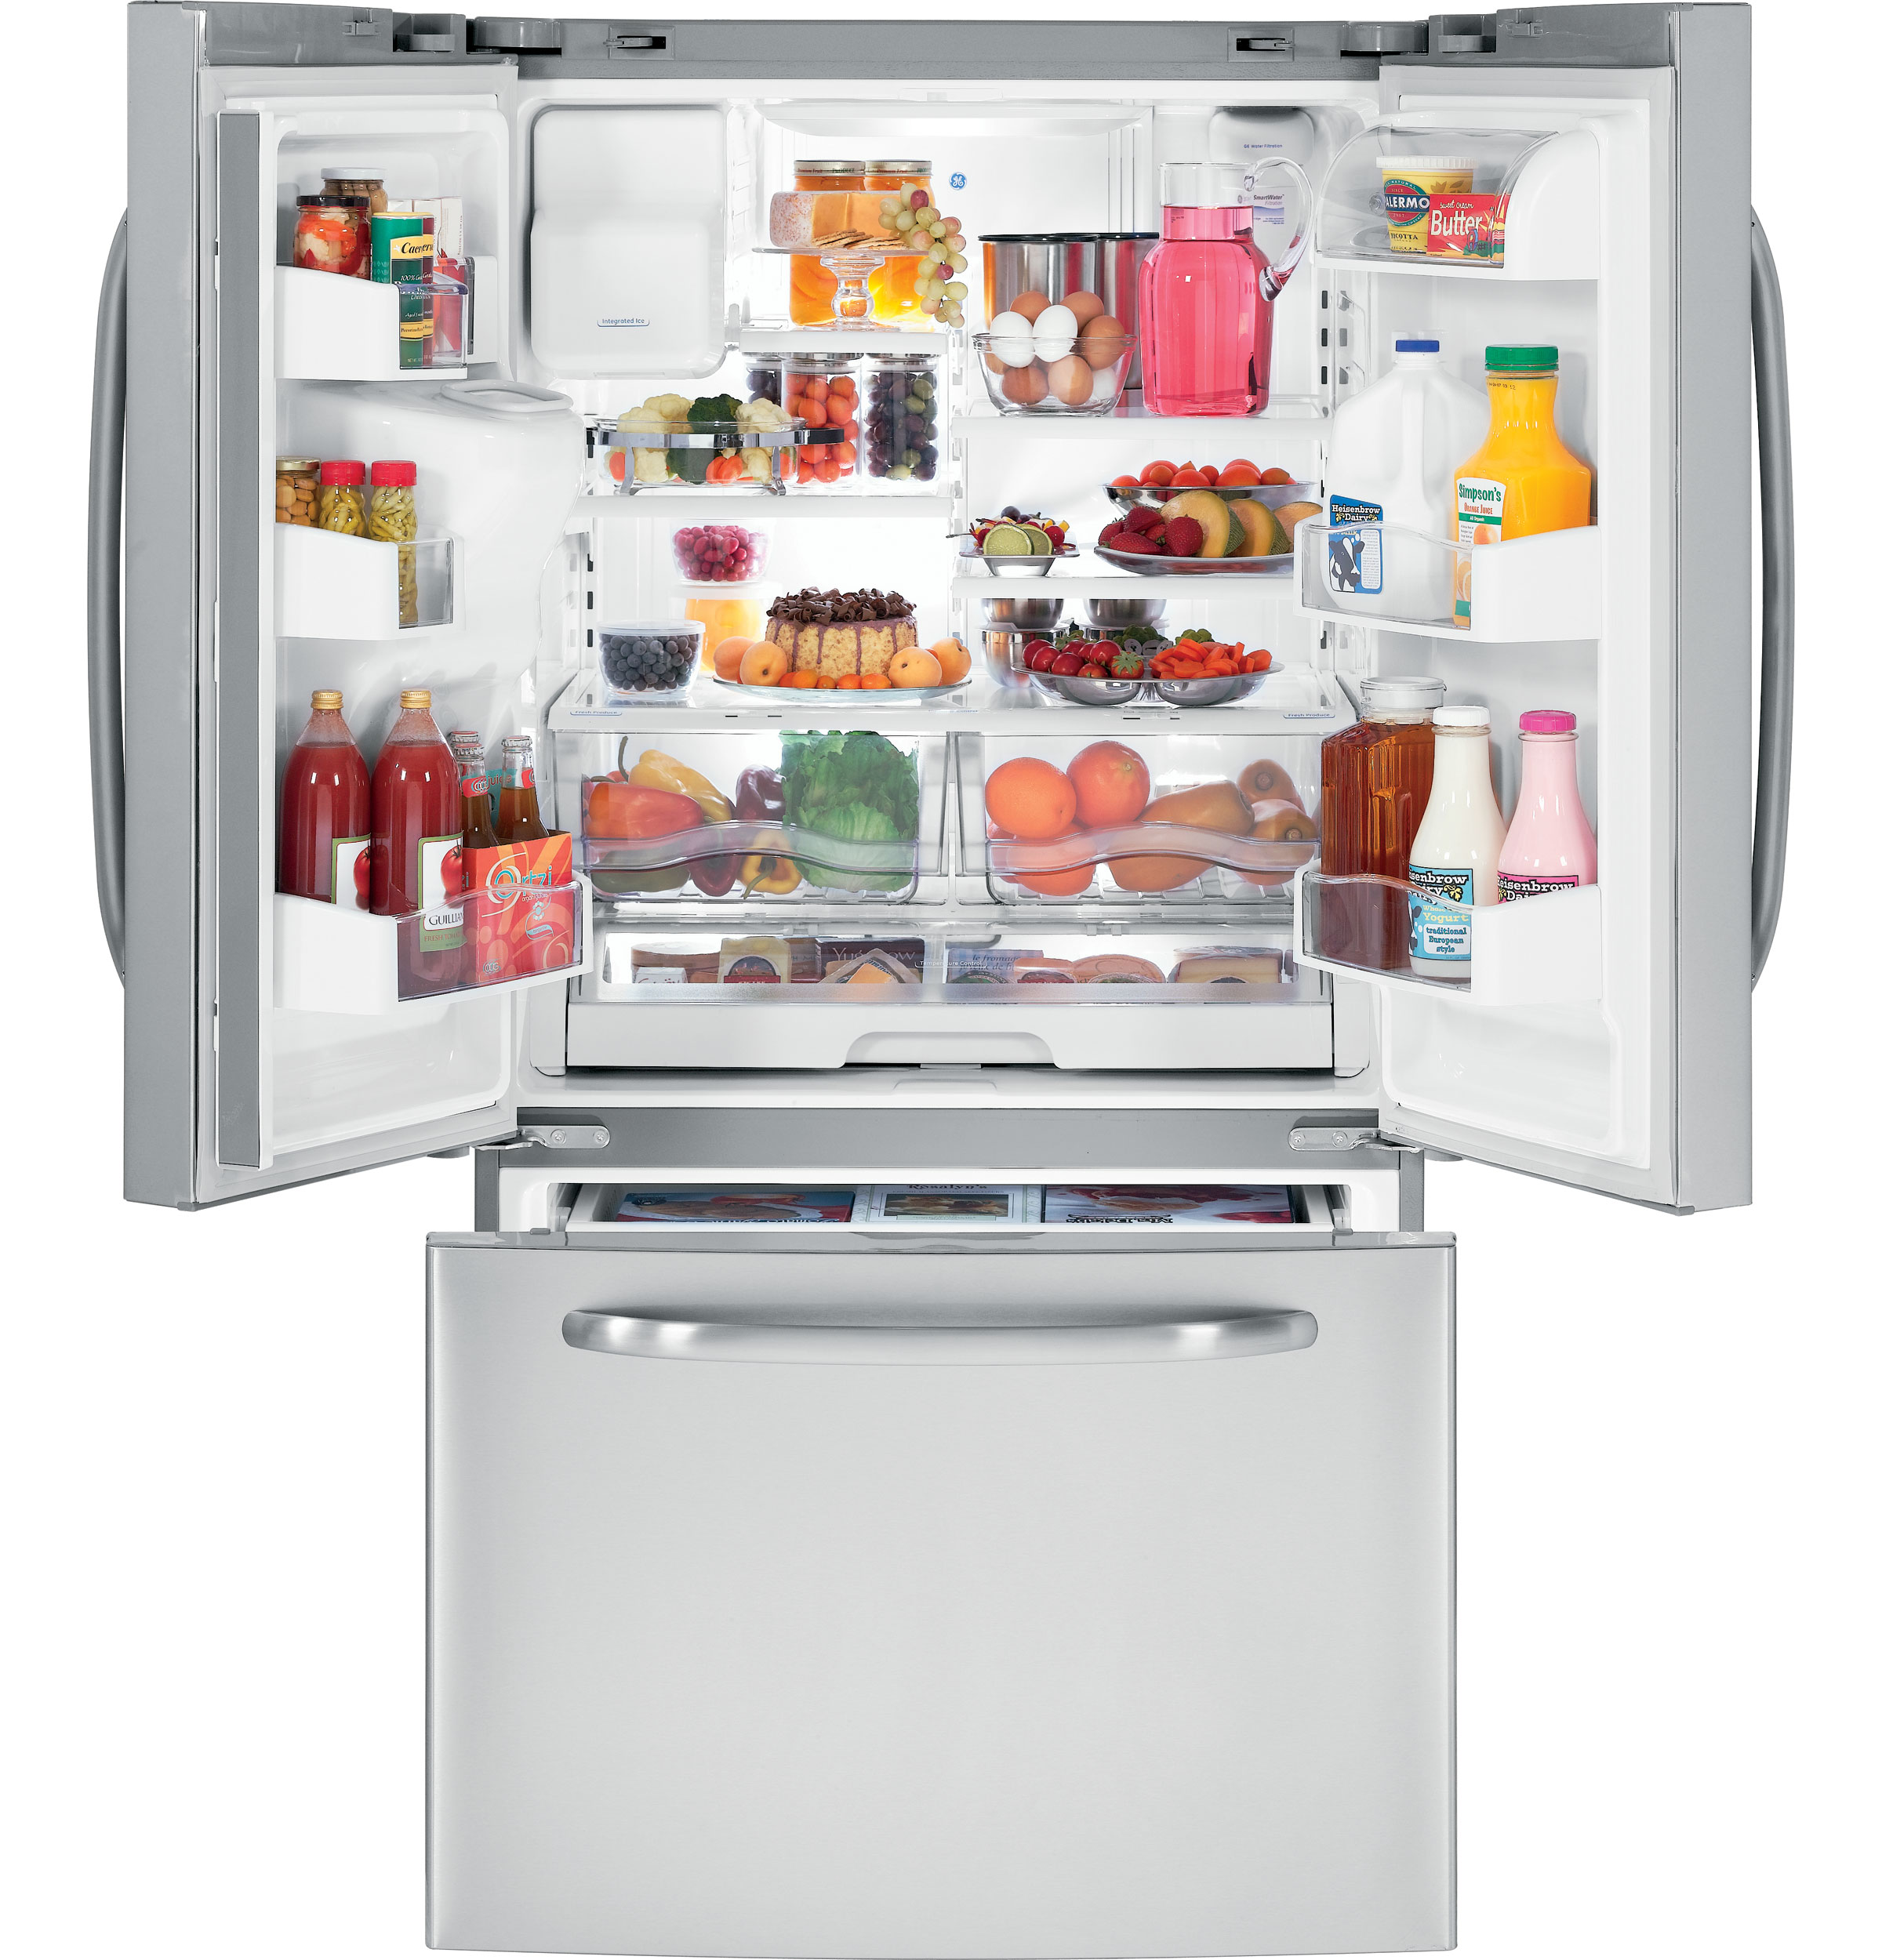 full extra reliable american reviews kitchen door french astonishing top consumer refrigerator most under sale by side freezer brand size refrigerators of best large fridge lg reports freezers